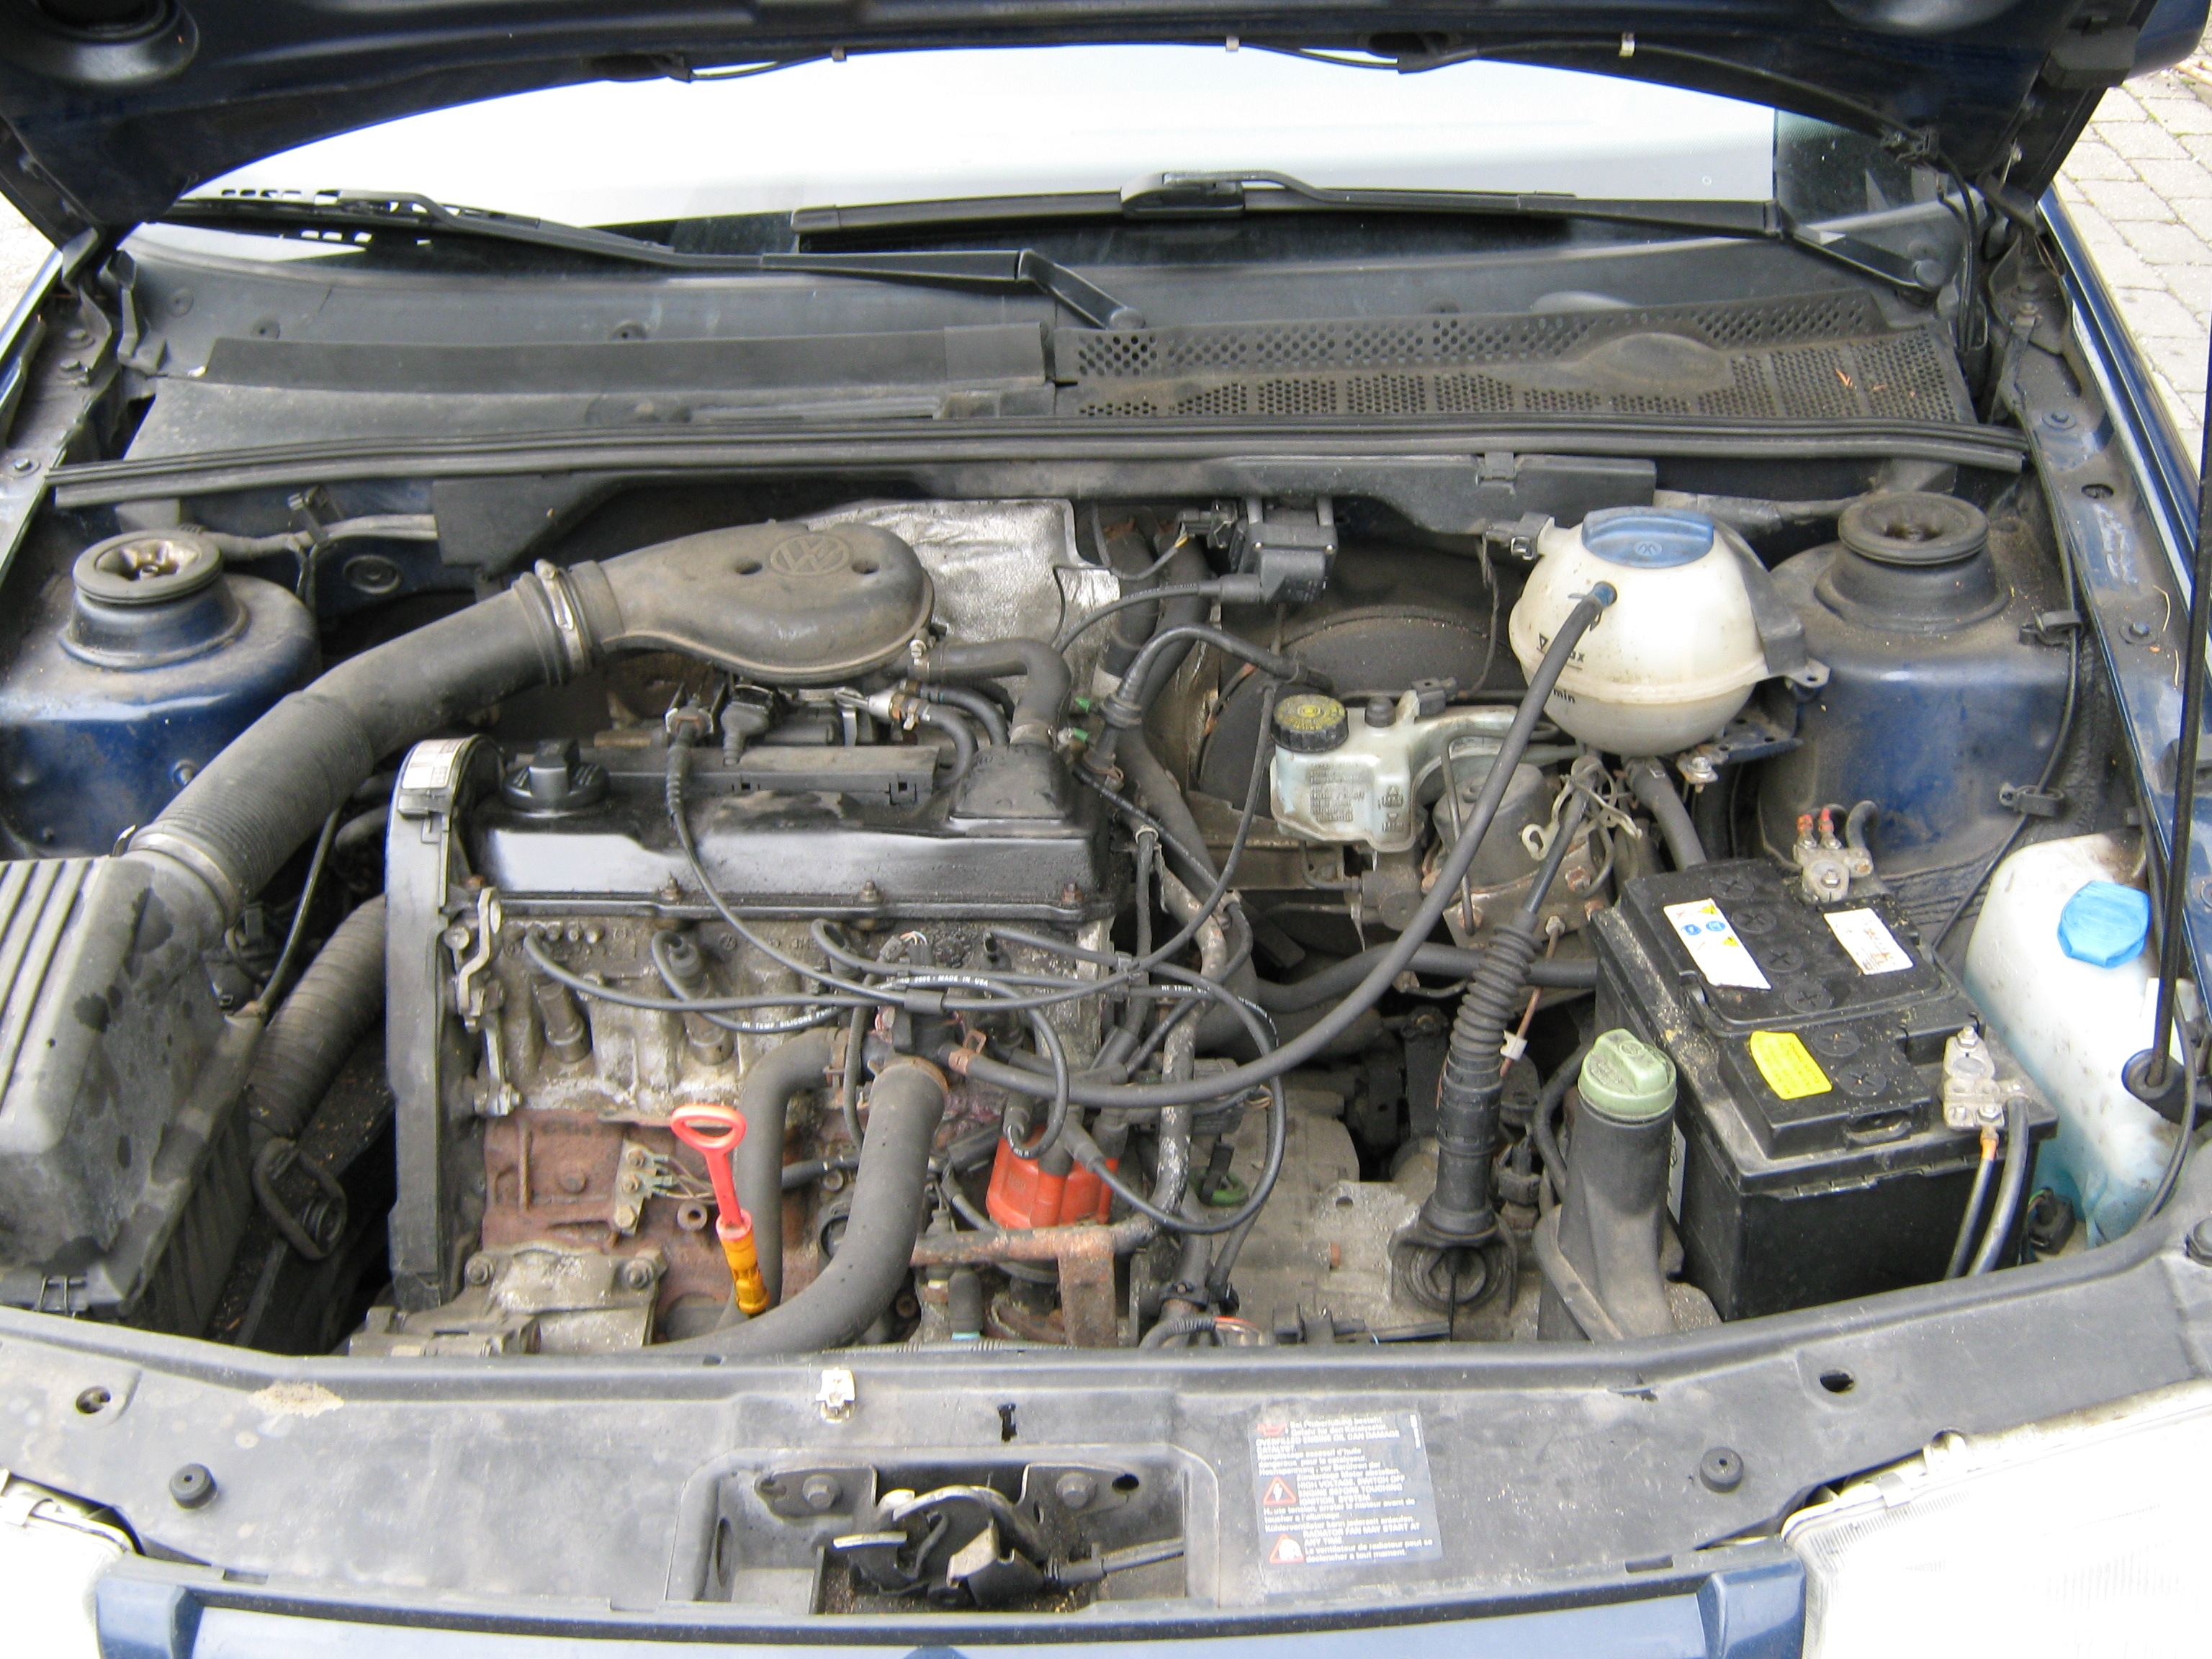 A 90 hp 1.8 engine mounted in a 1997 Volkswagen Jetta